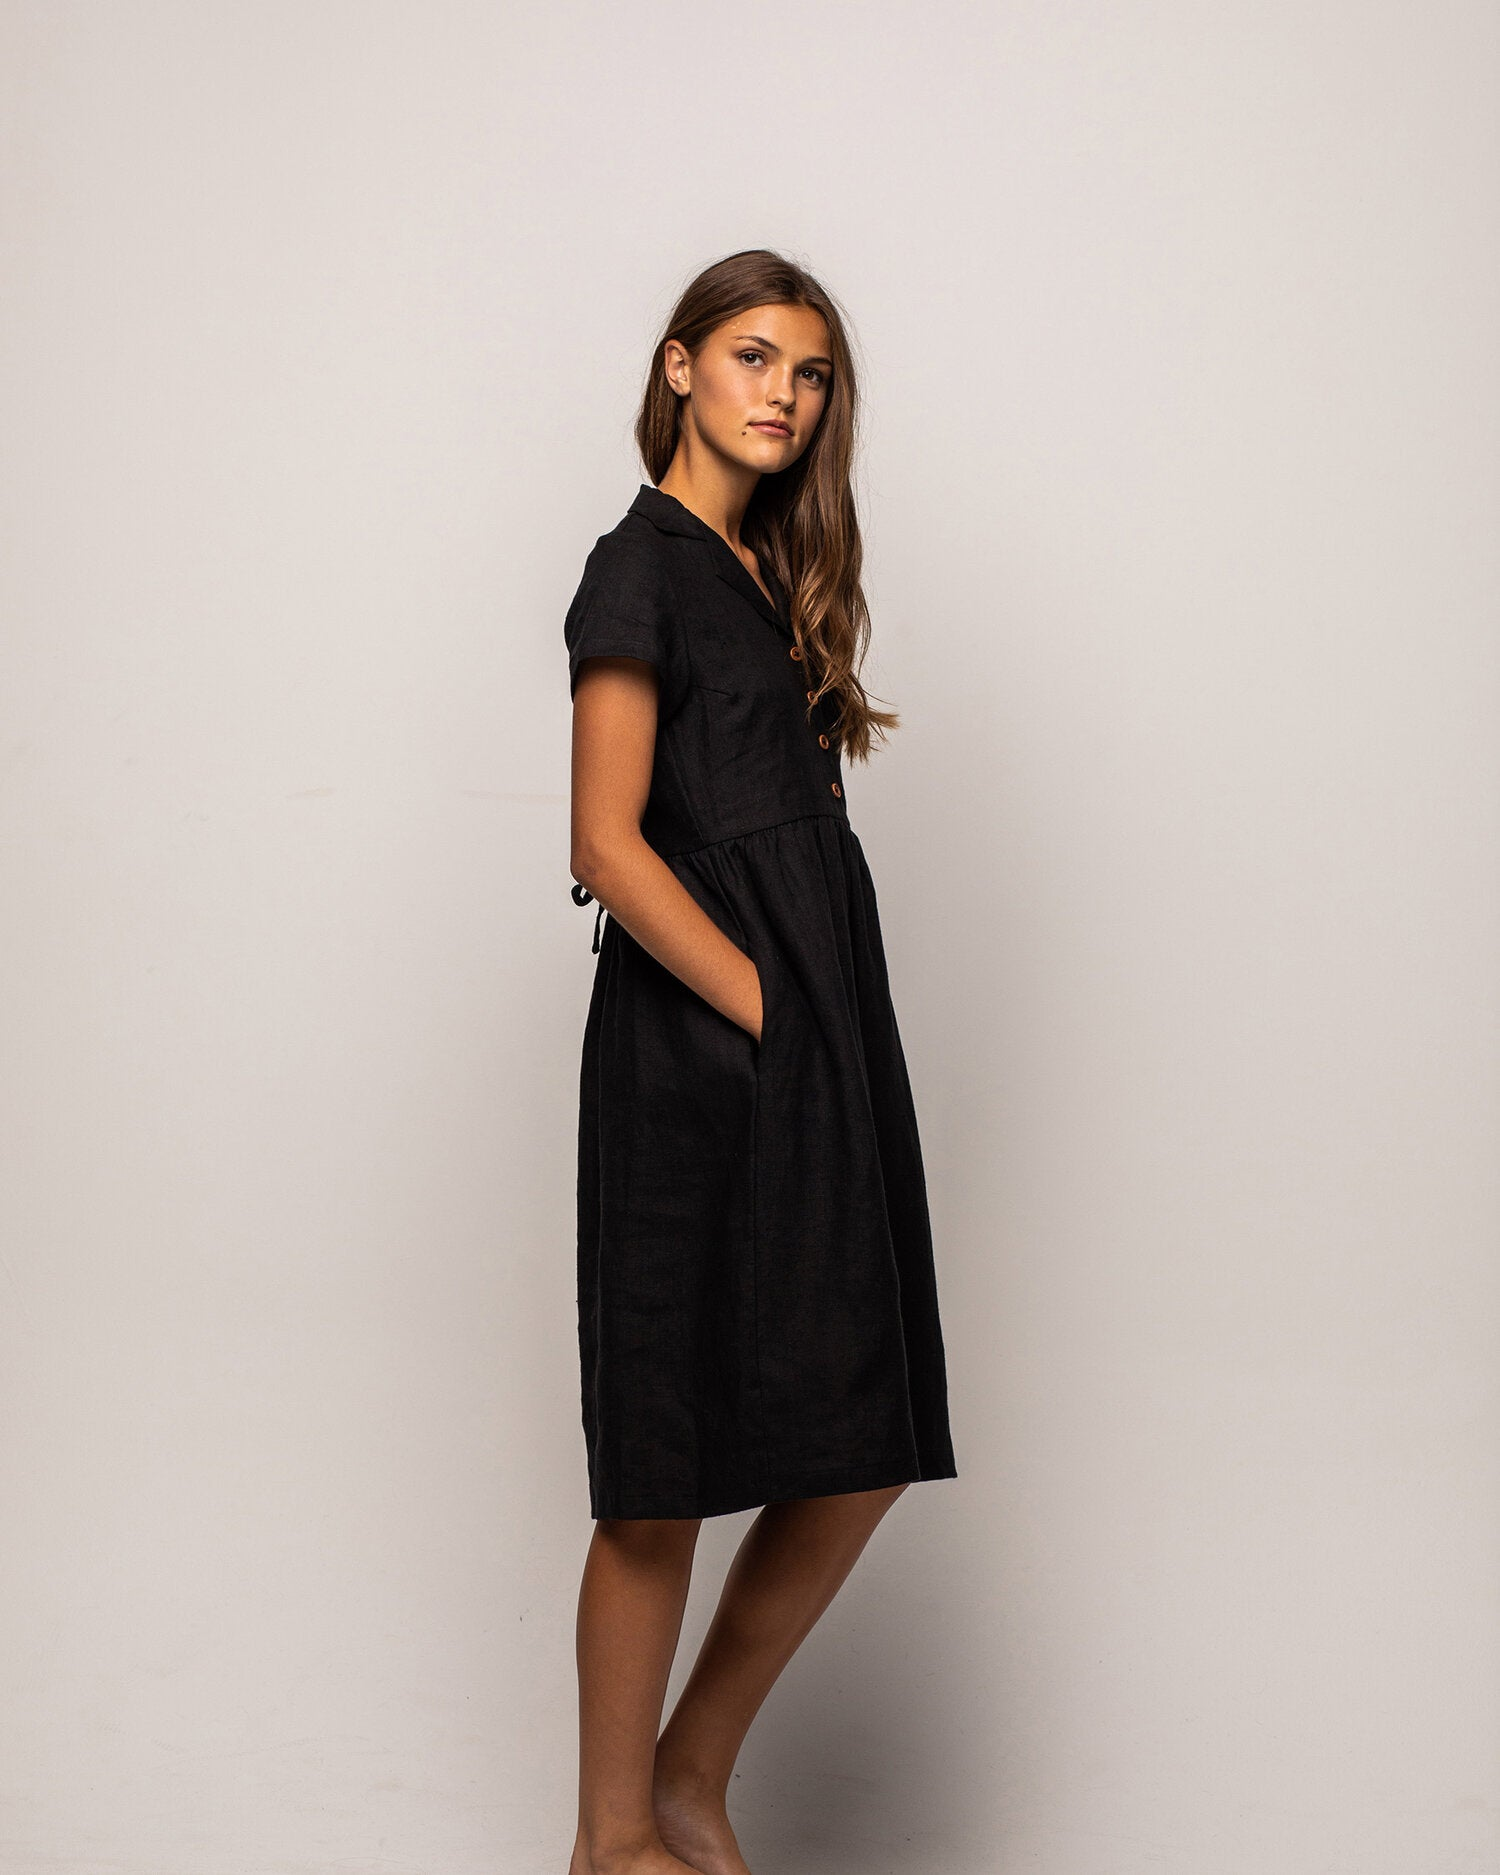 Model No.30 in Black Linen, a v neck, midi dress — Pyne & Smith Clothiers